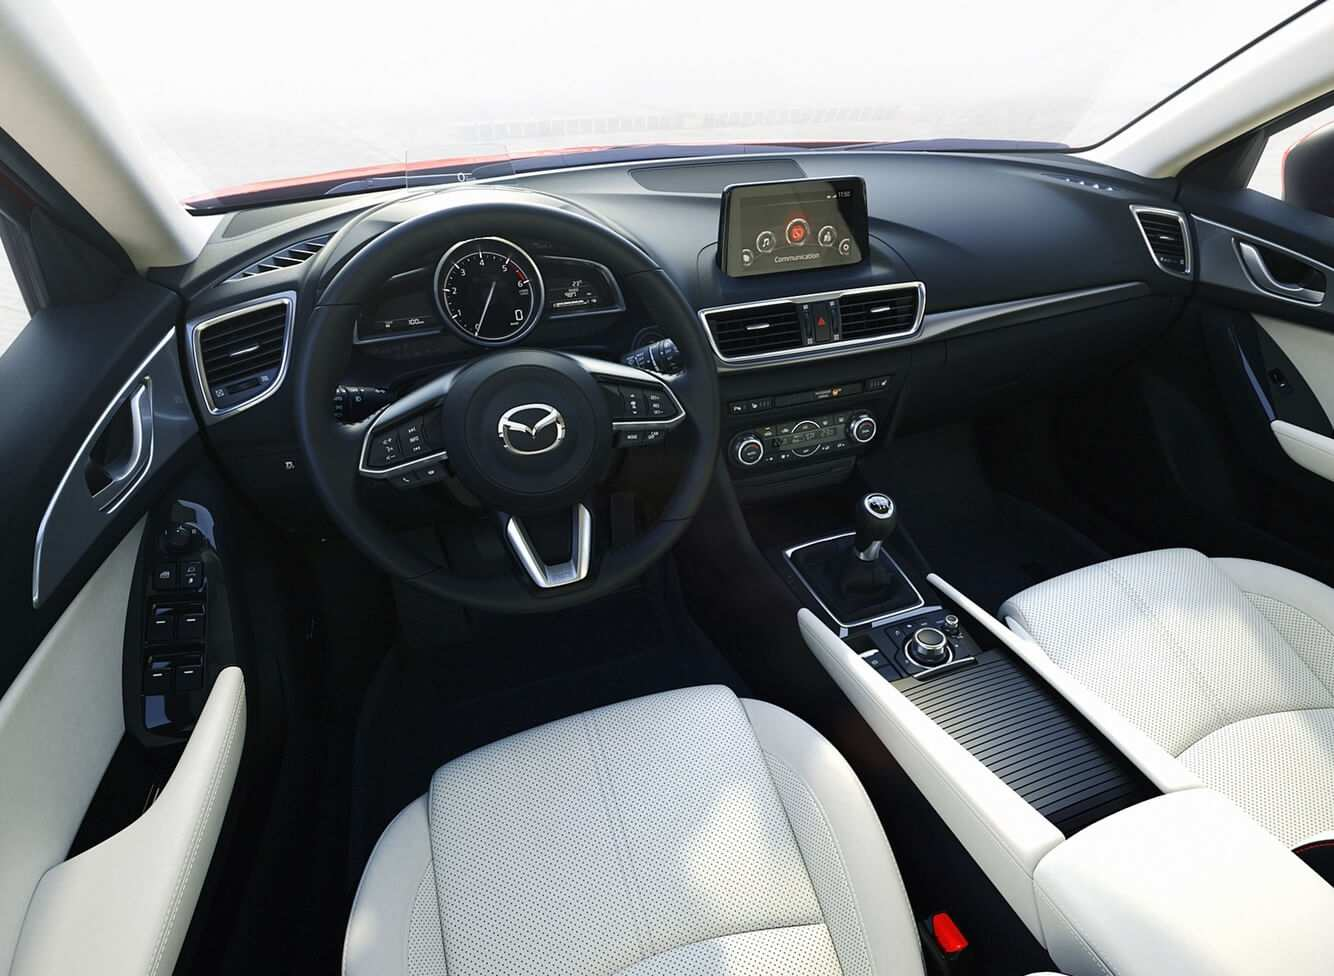 22 Great 2020 Mazda 3 Turbo Pricing for 2020 Mazda 3 Turbo